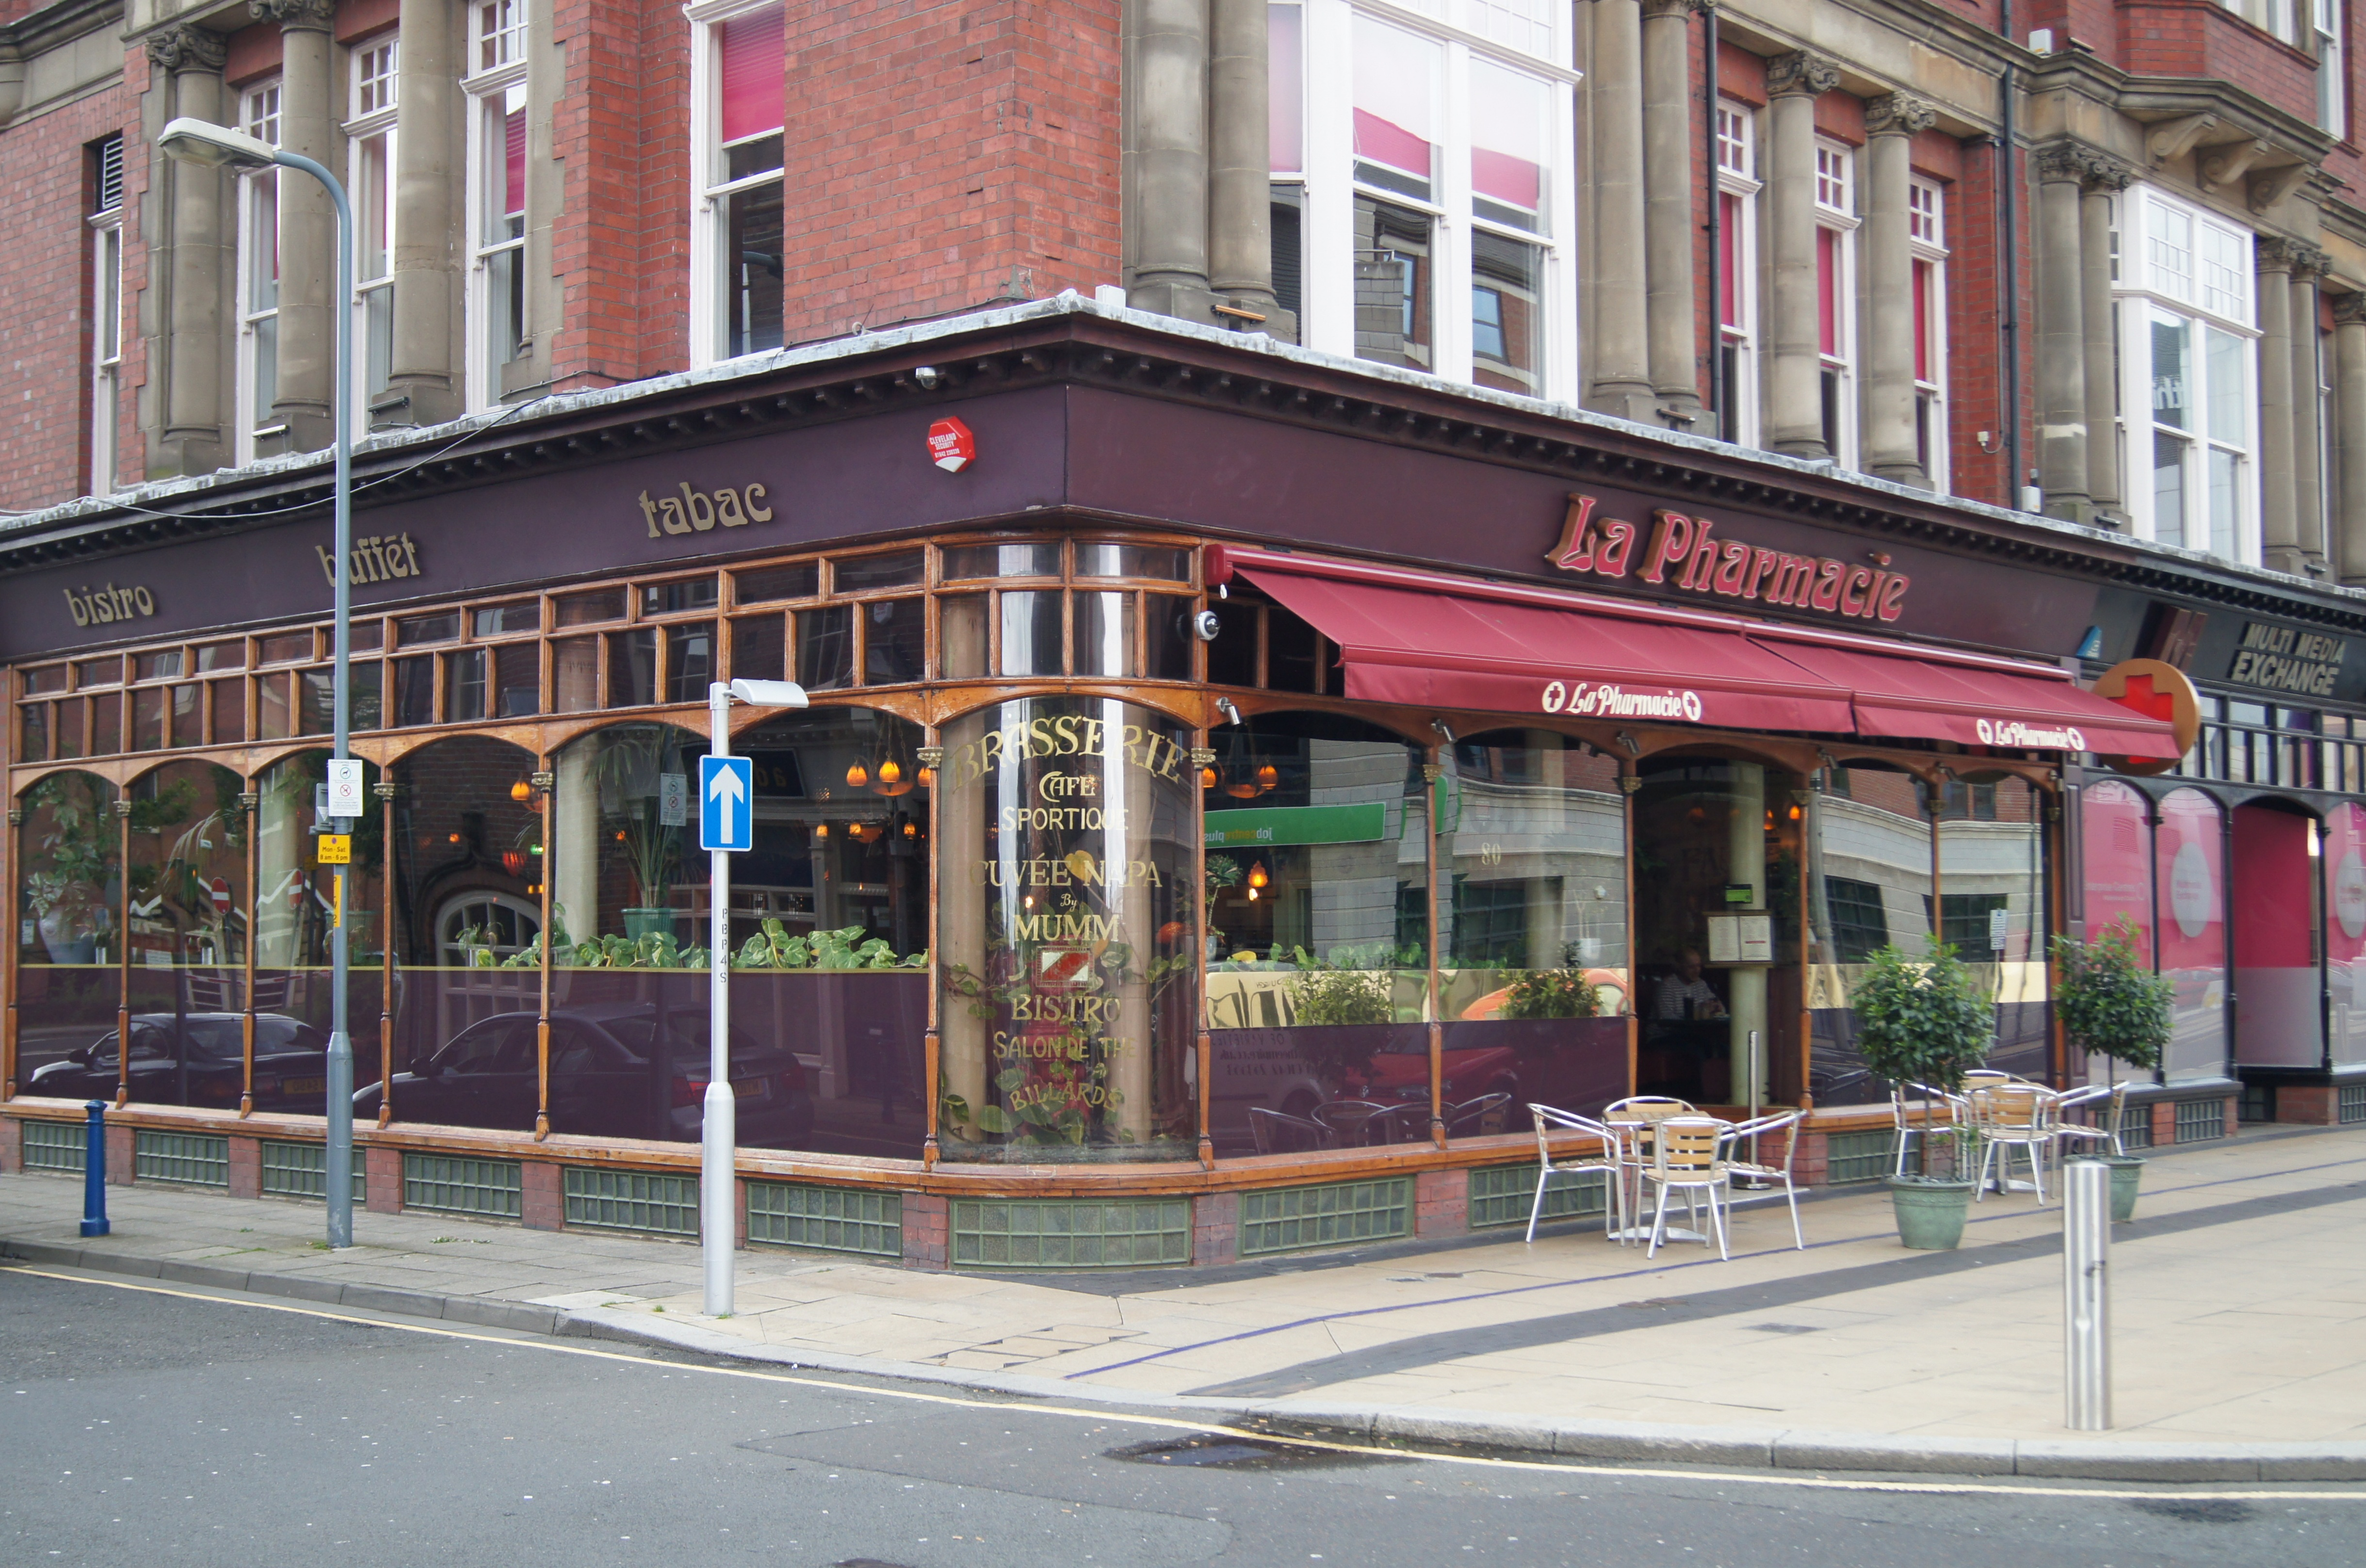 file la pharmacie cafe brasserie and bistro middlesbrough jpg wikimedia commons. Black Bedroom Furniture Sets. Home Design Ideas